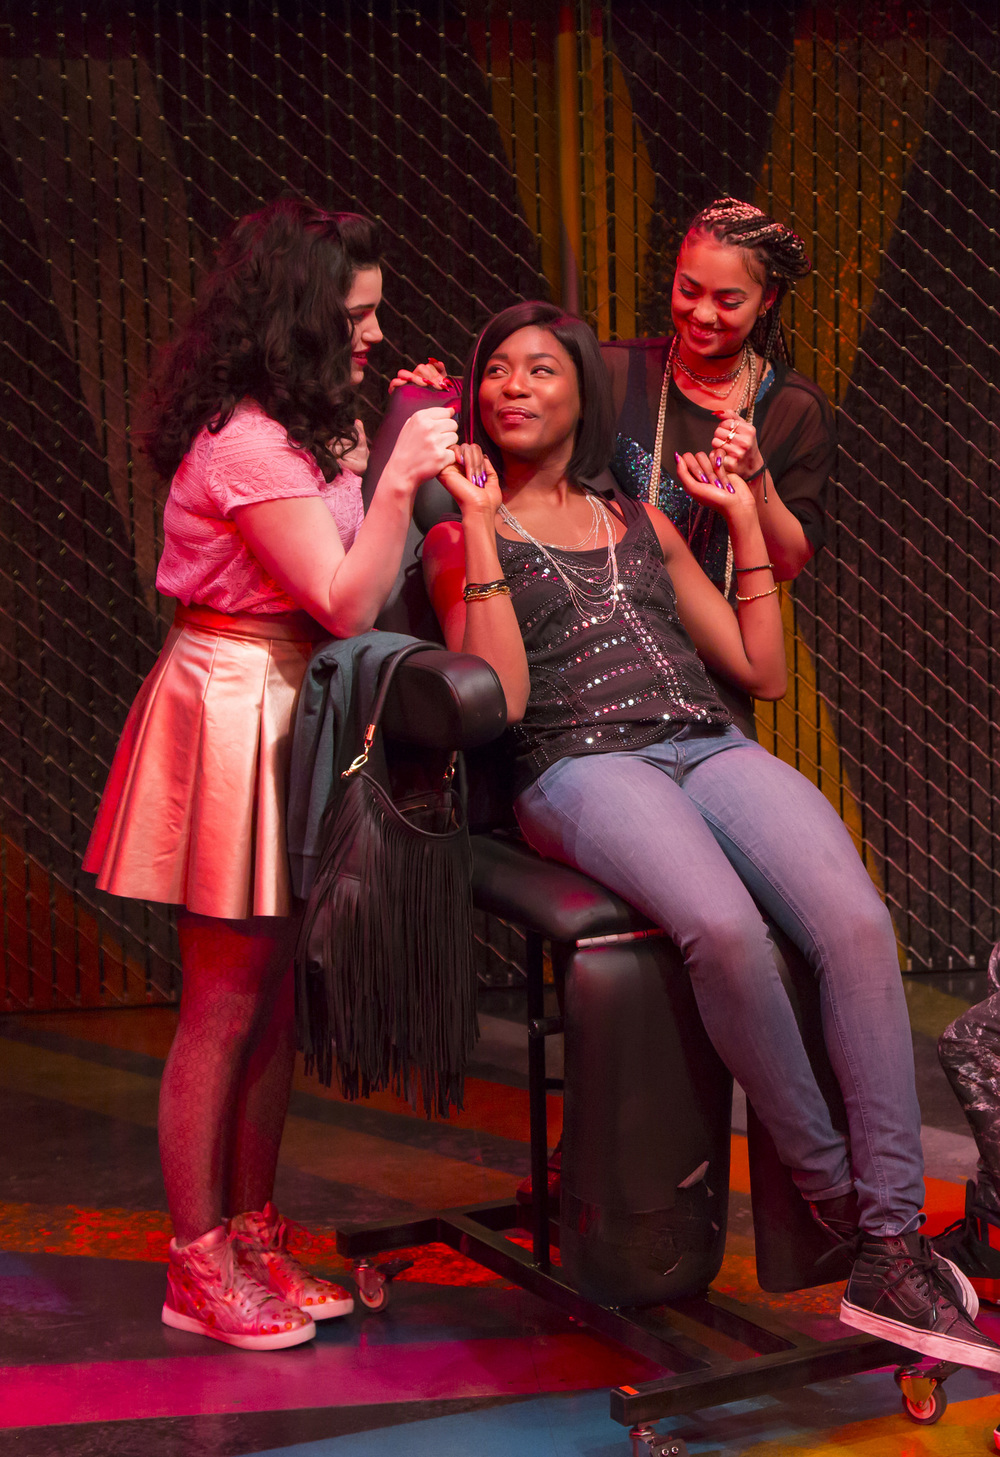 Carolina Sanchez, Jasmine Carmichael, and Shazi Raja in  Milk Like Sugar. Milk Like Sugar  plays from January 29 – February 27, South End / Calderwood Pavilion at the BCA. Photo by T. Charles Erickson.